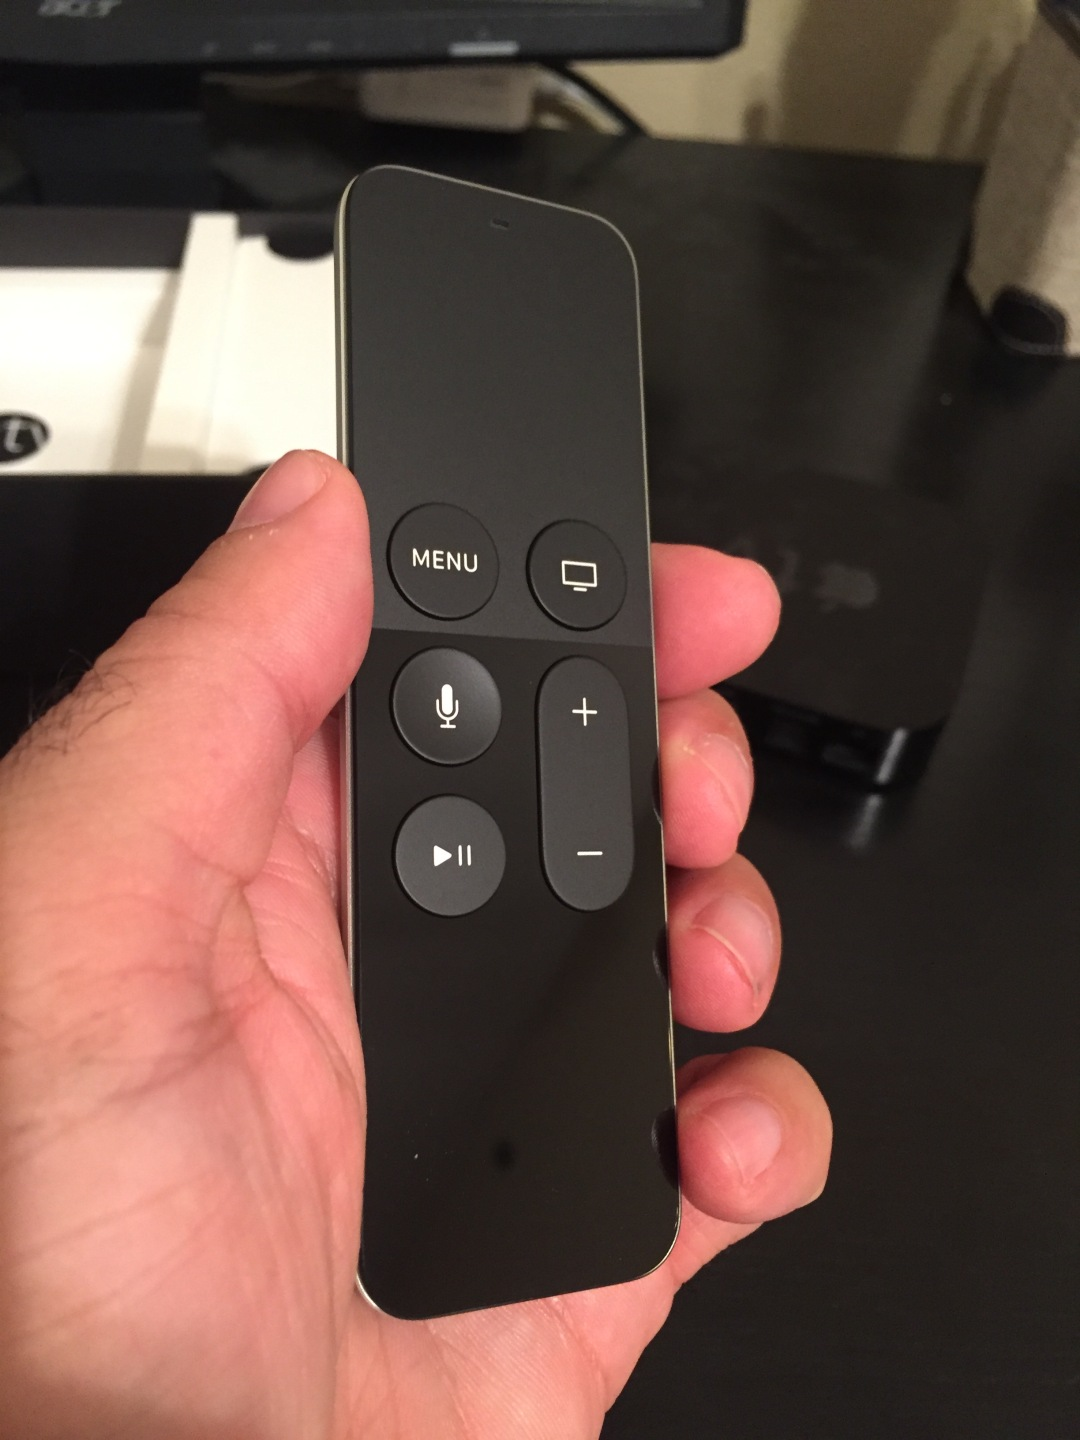 Siri remote for 4th generation Apple TV